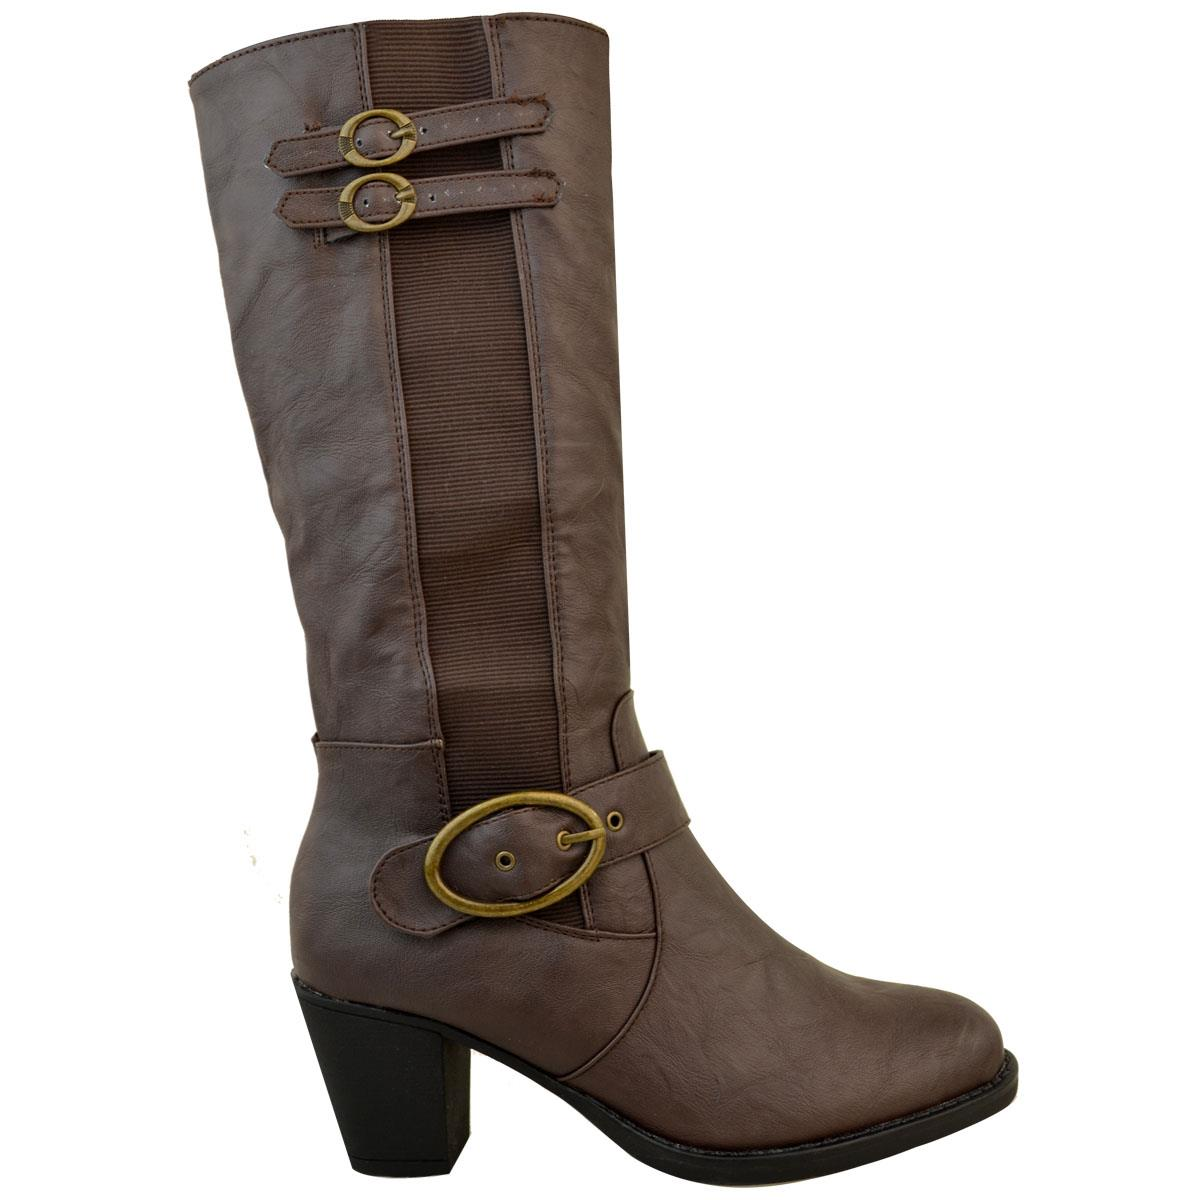 Womens-Ladies-Knee-Calf-High-Boots-Block-Heels-Stretchy-Thigh-Shoes-Grip-Size thumbnail 17